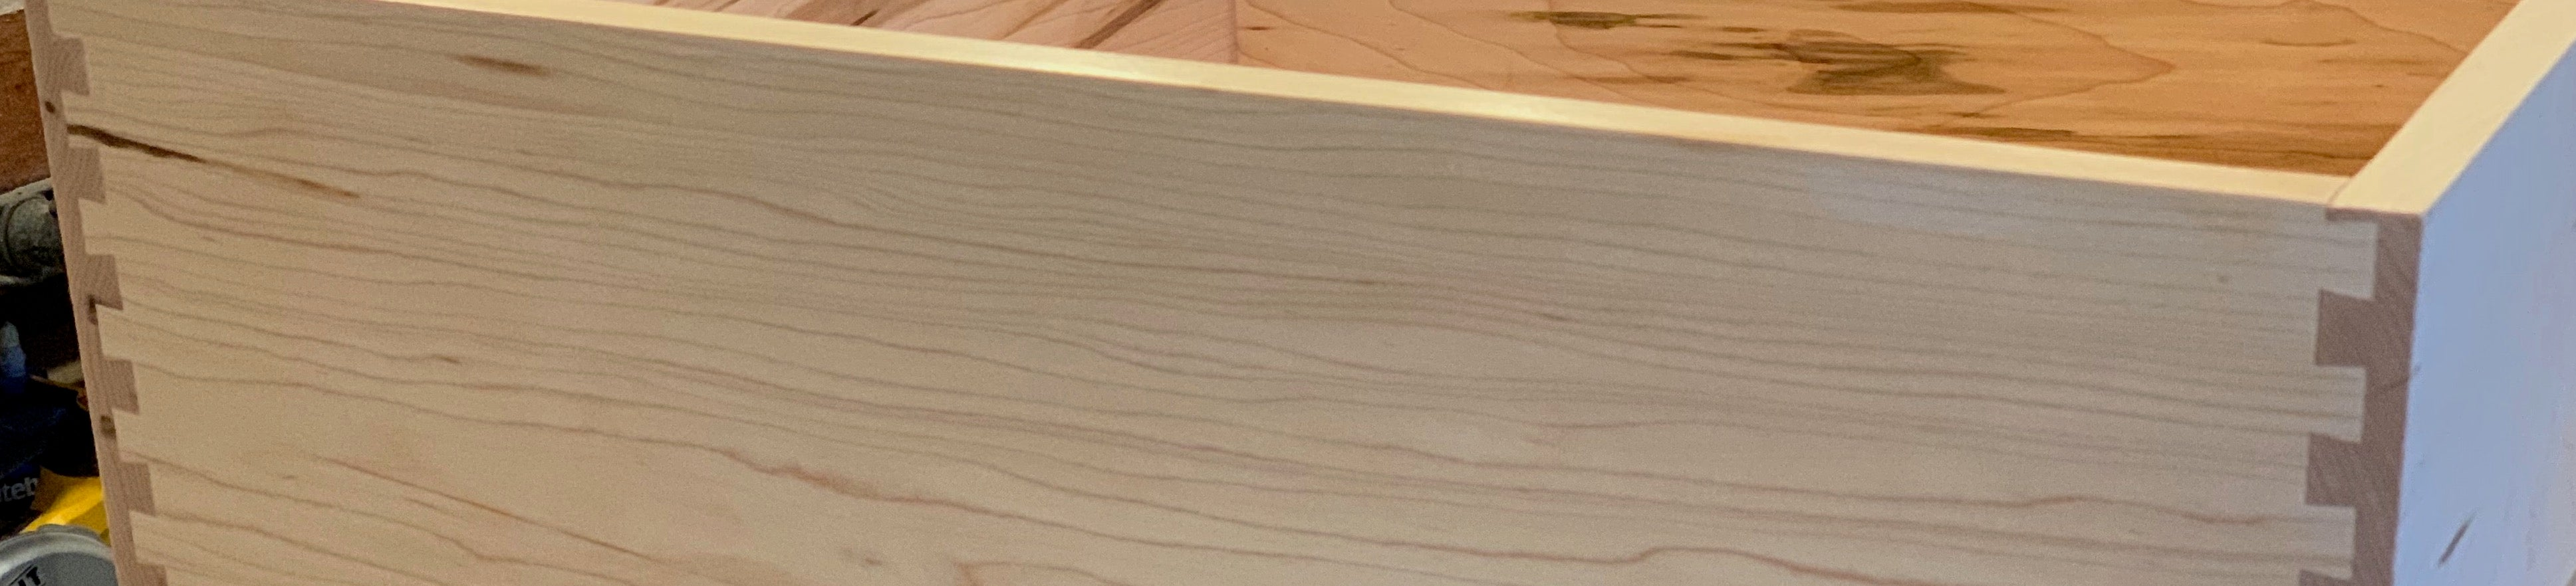 Dovetails cut in our shop, not outsourced!